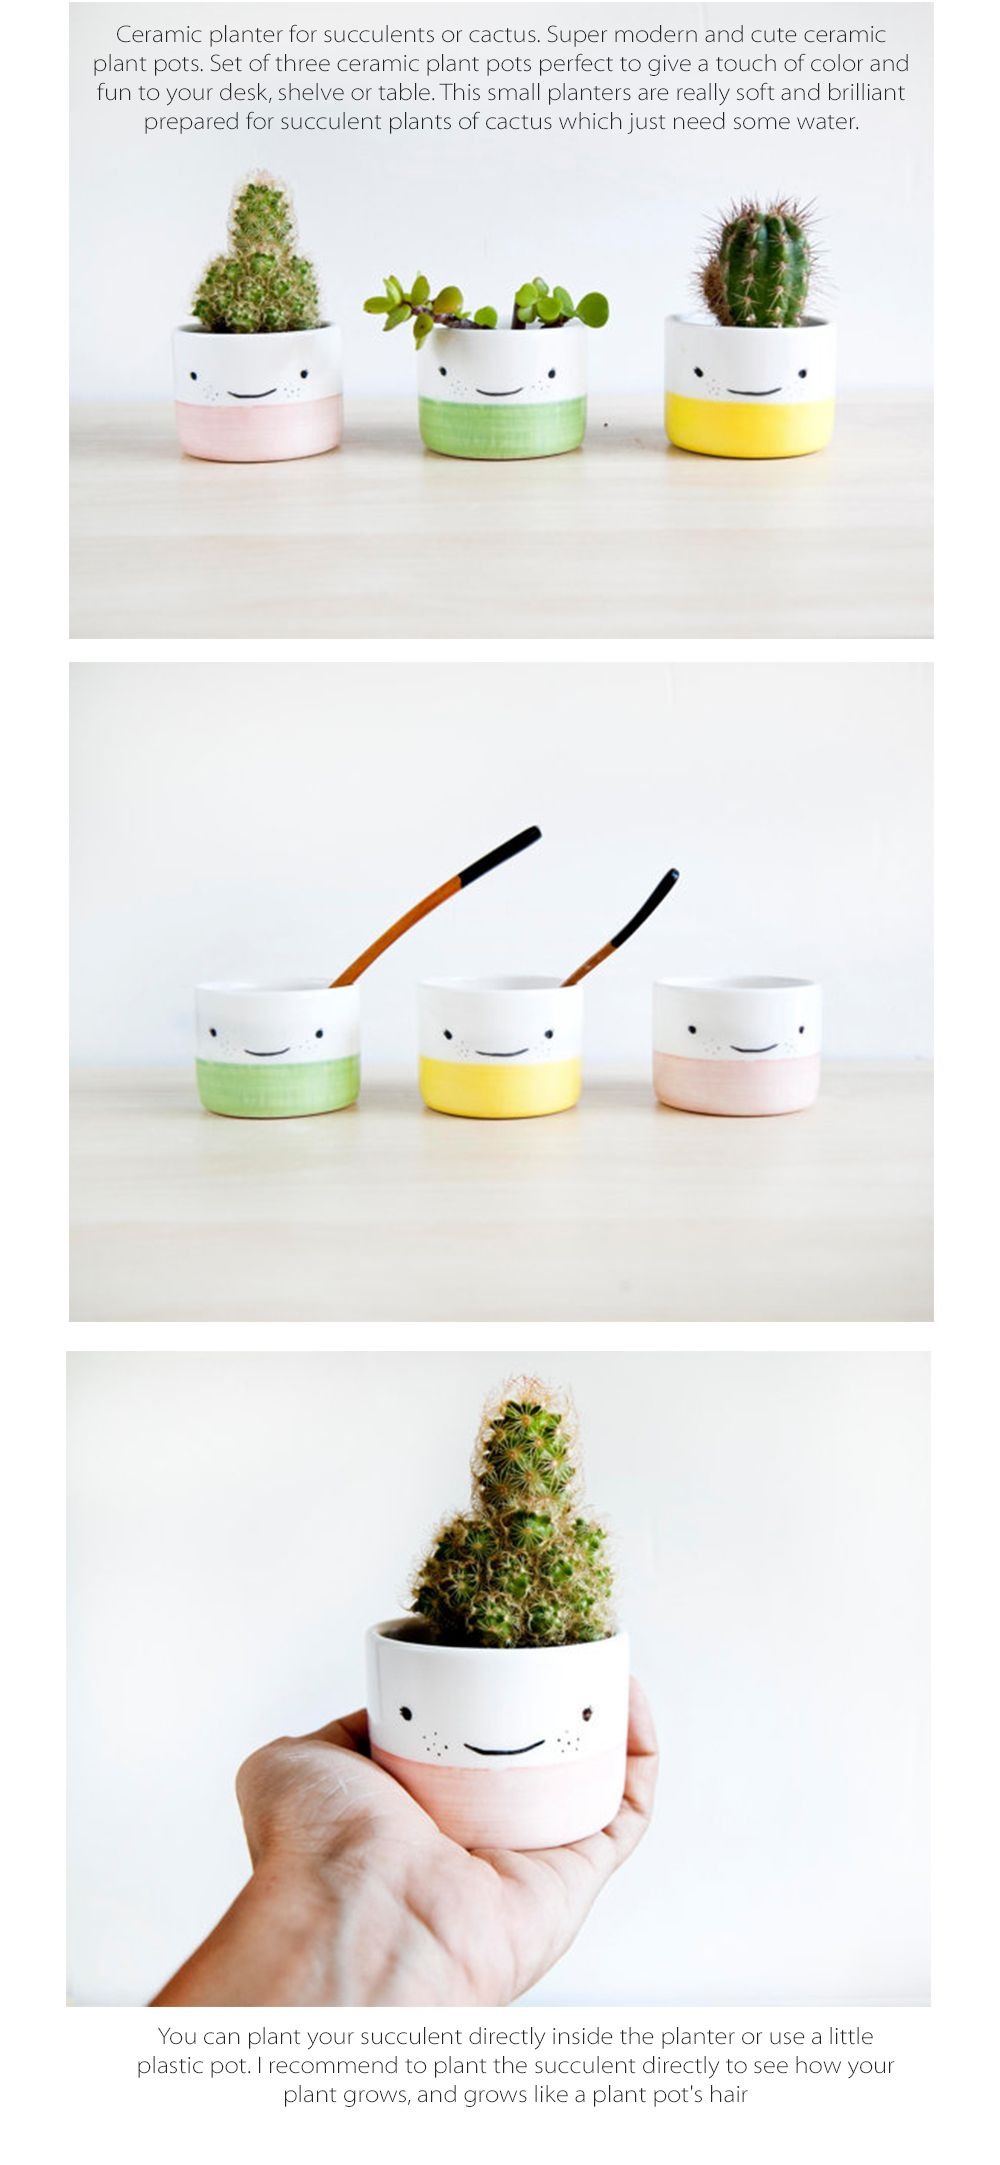 Small ceramic planter with face for succulent Small Ceramic plant pot indoor Smile face planters Pottery planter pot Small planter set